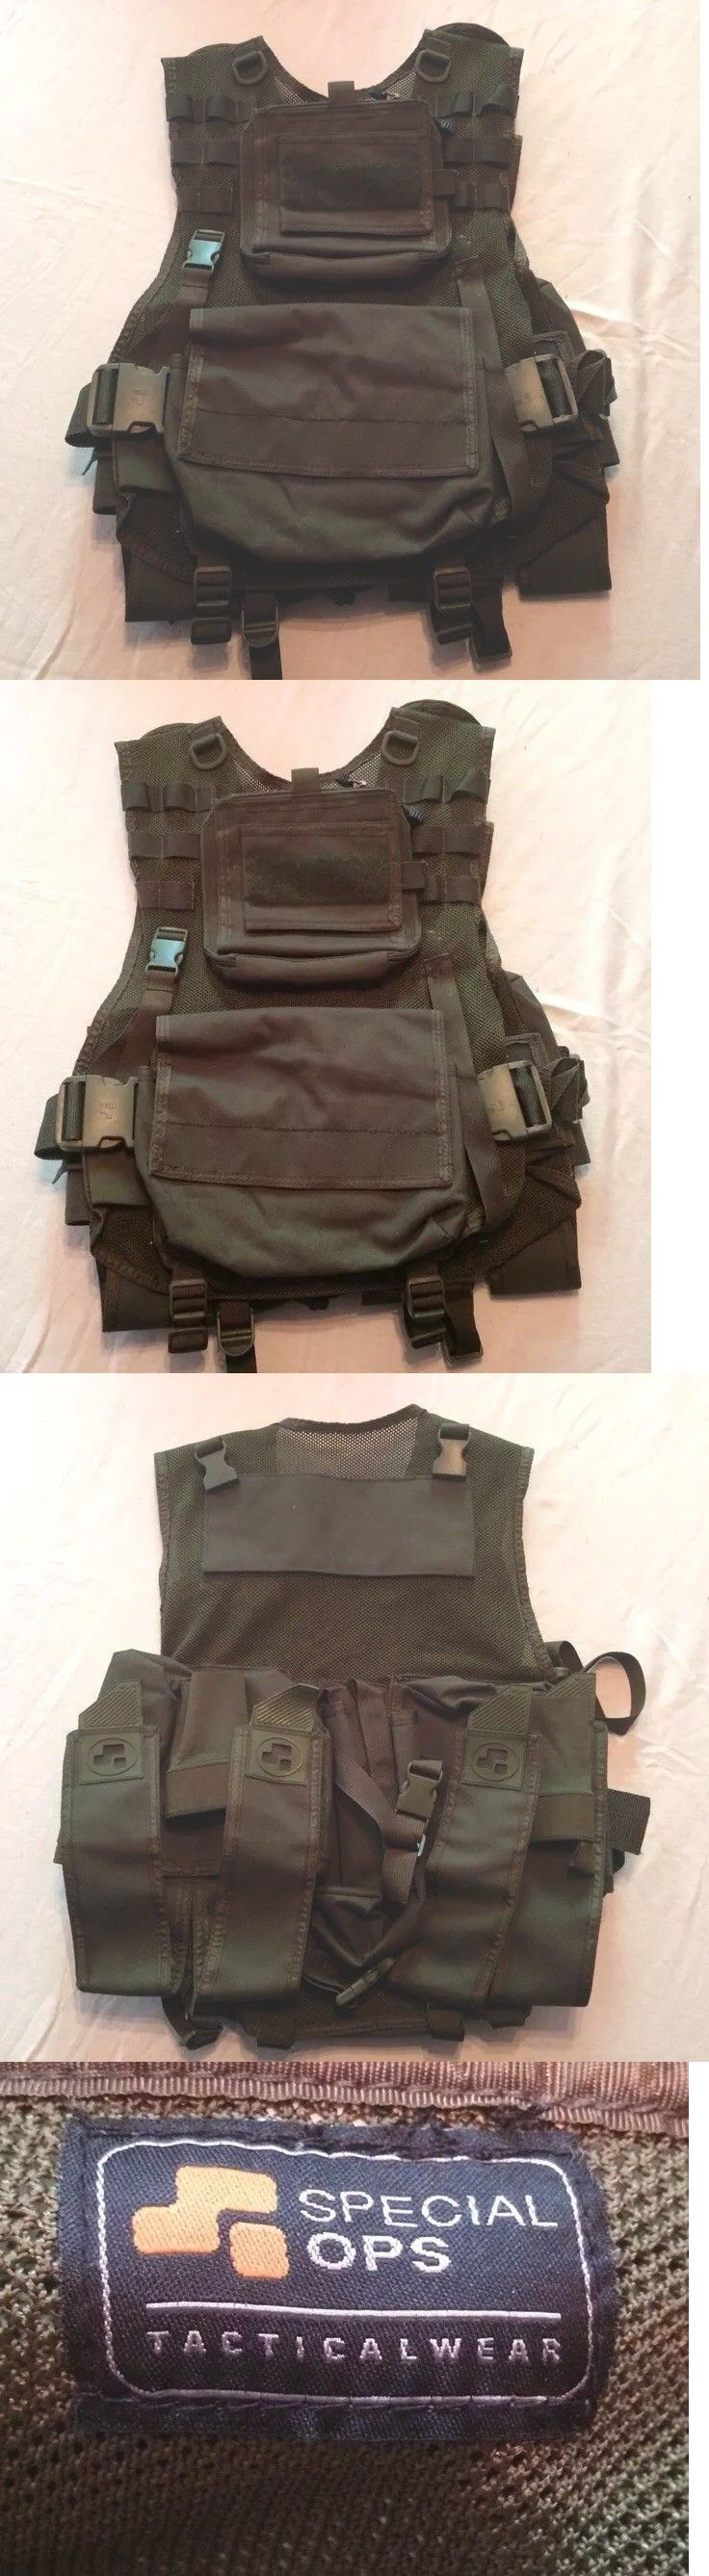 Vests 36284: Special Ops Scenario Tactical Paintball Vest -> BUY IT NOW ONLY: $74.99 on eBay!